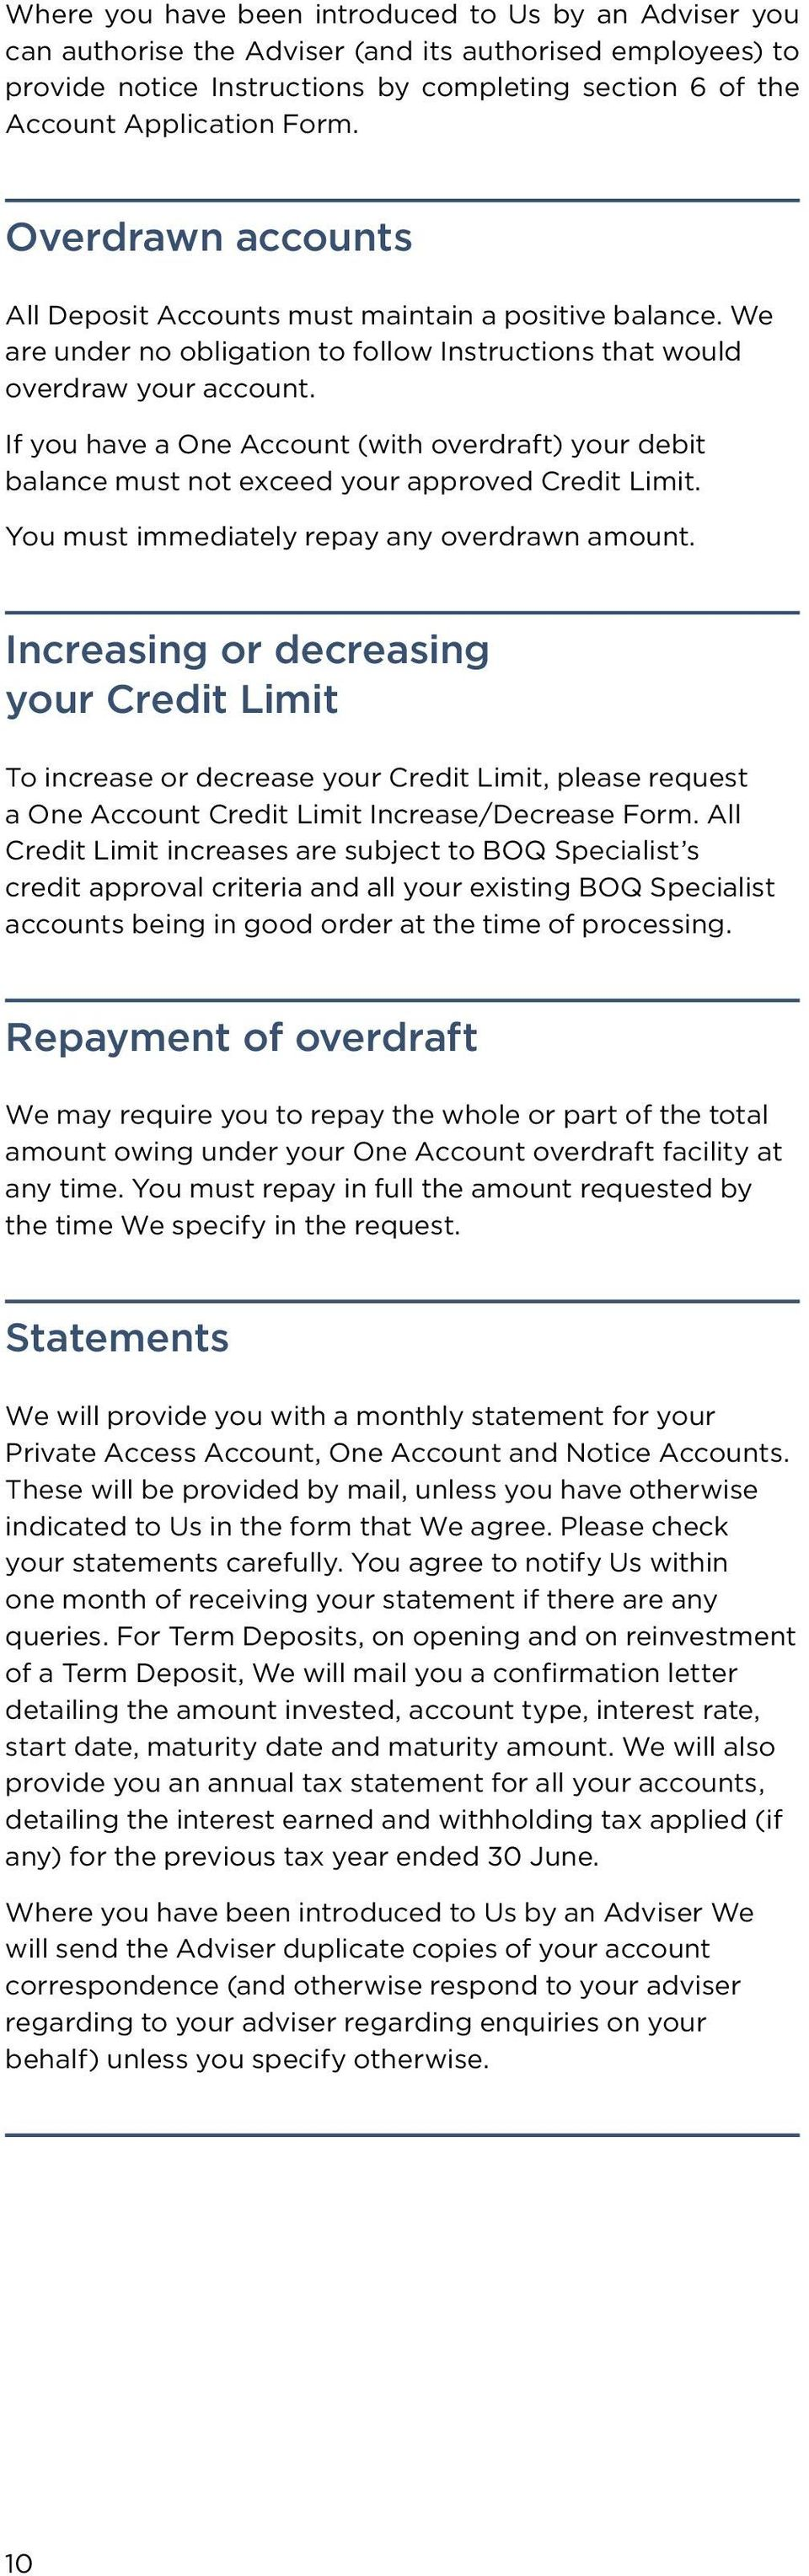 If you have a One Account (with overdraft) your debit balance must not exceed your approved Credit Limit. You must immediately repay any overdrawn amount.